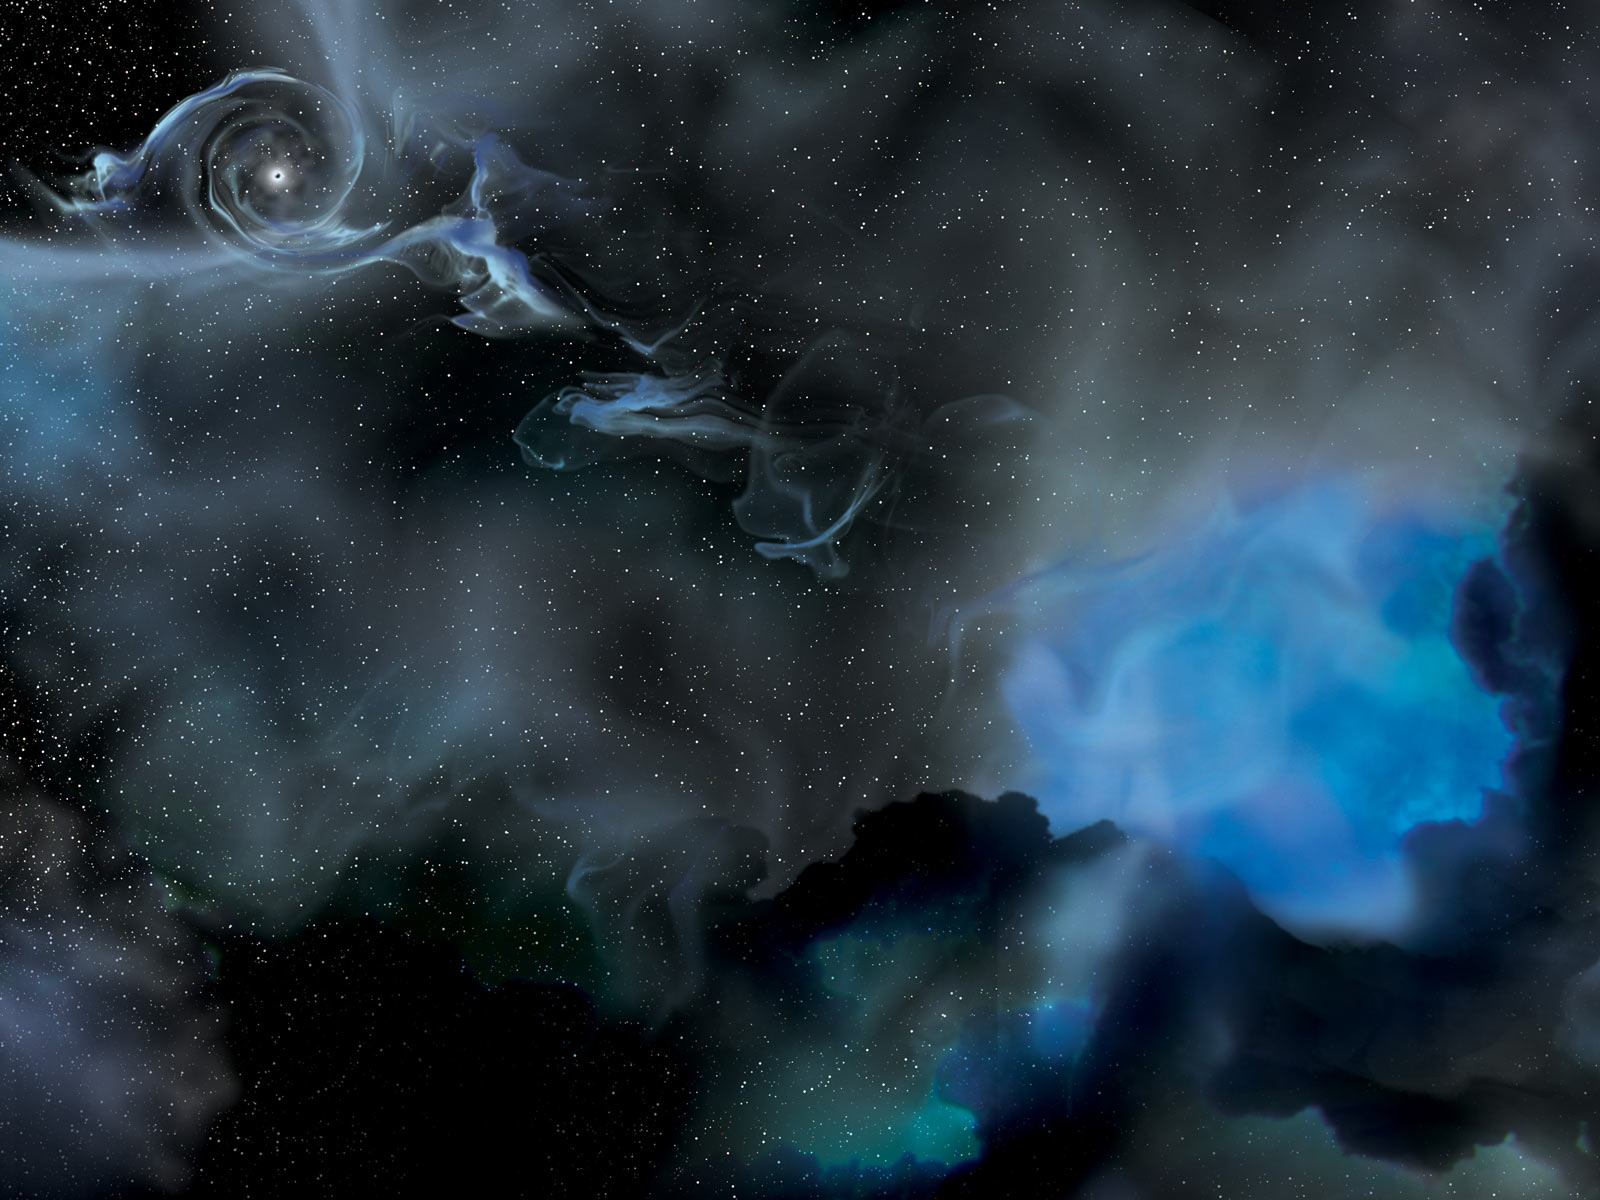 Cool 3d Space Wallpapers 9289 Hd Wallpapers in 3D - Imagesci.com